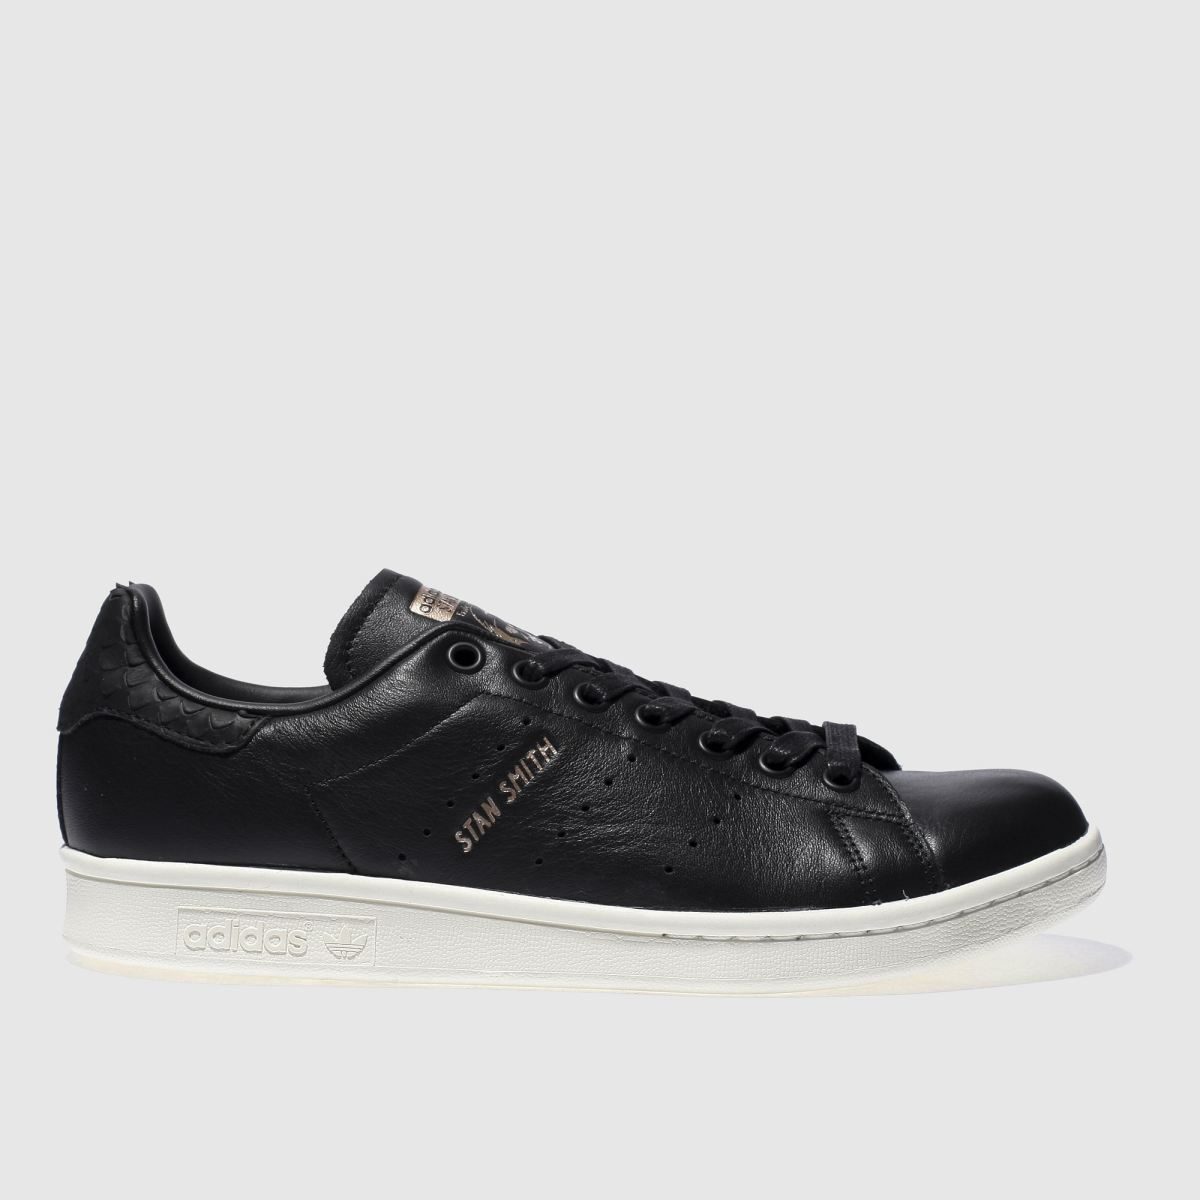 Adidas Black & Gold Stan Smith Trainers